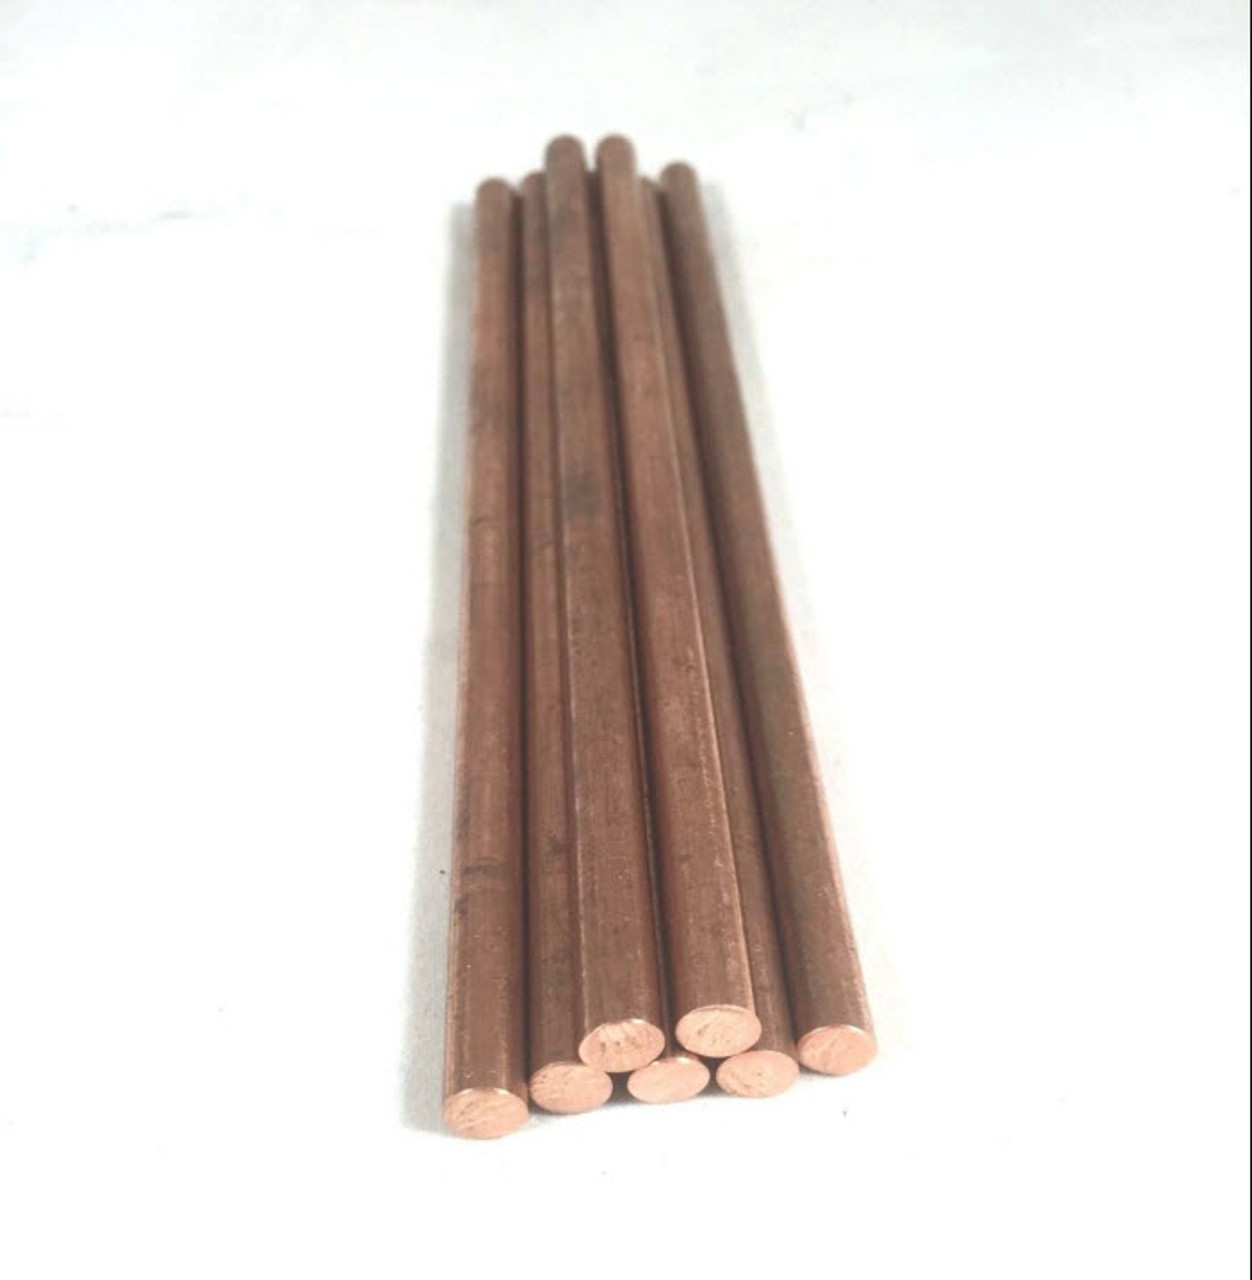 Copper pin for handles, 1/8